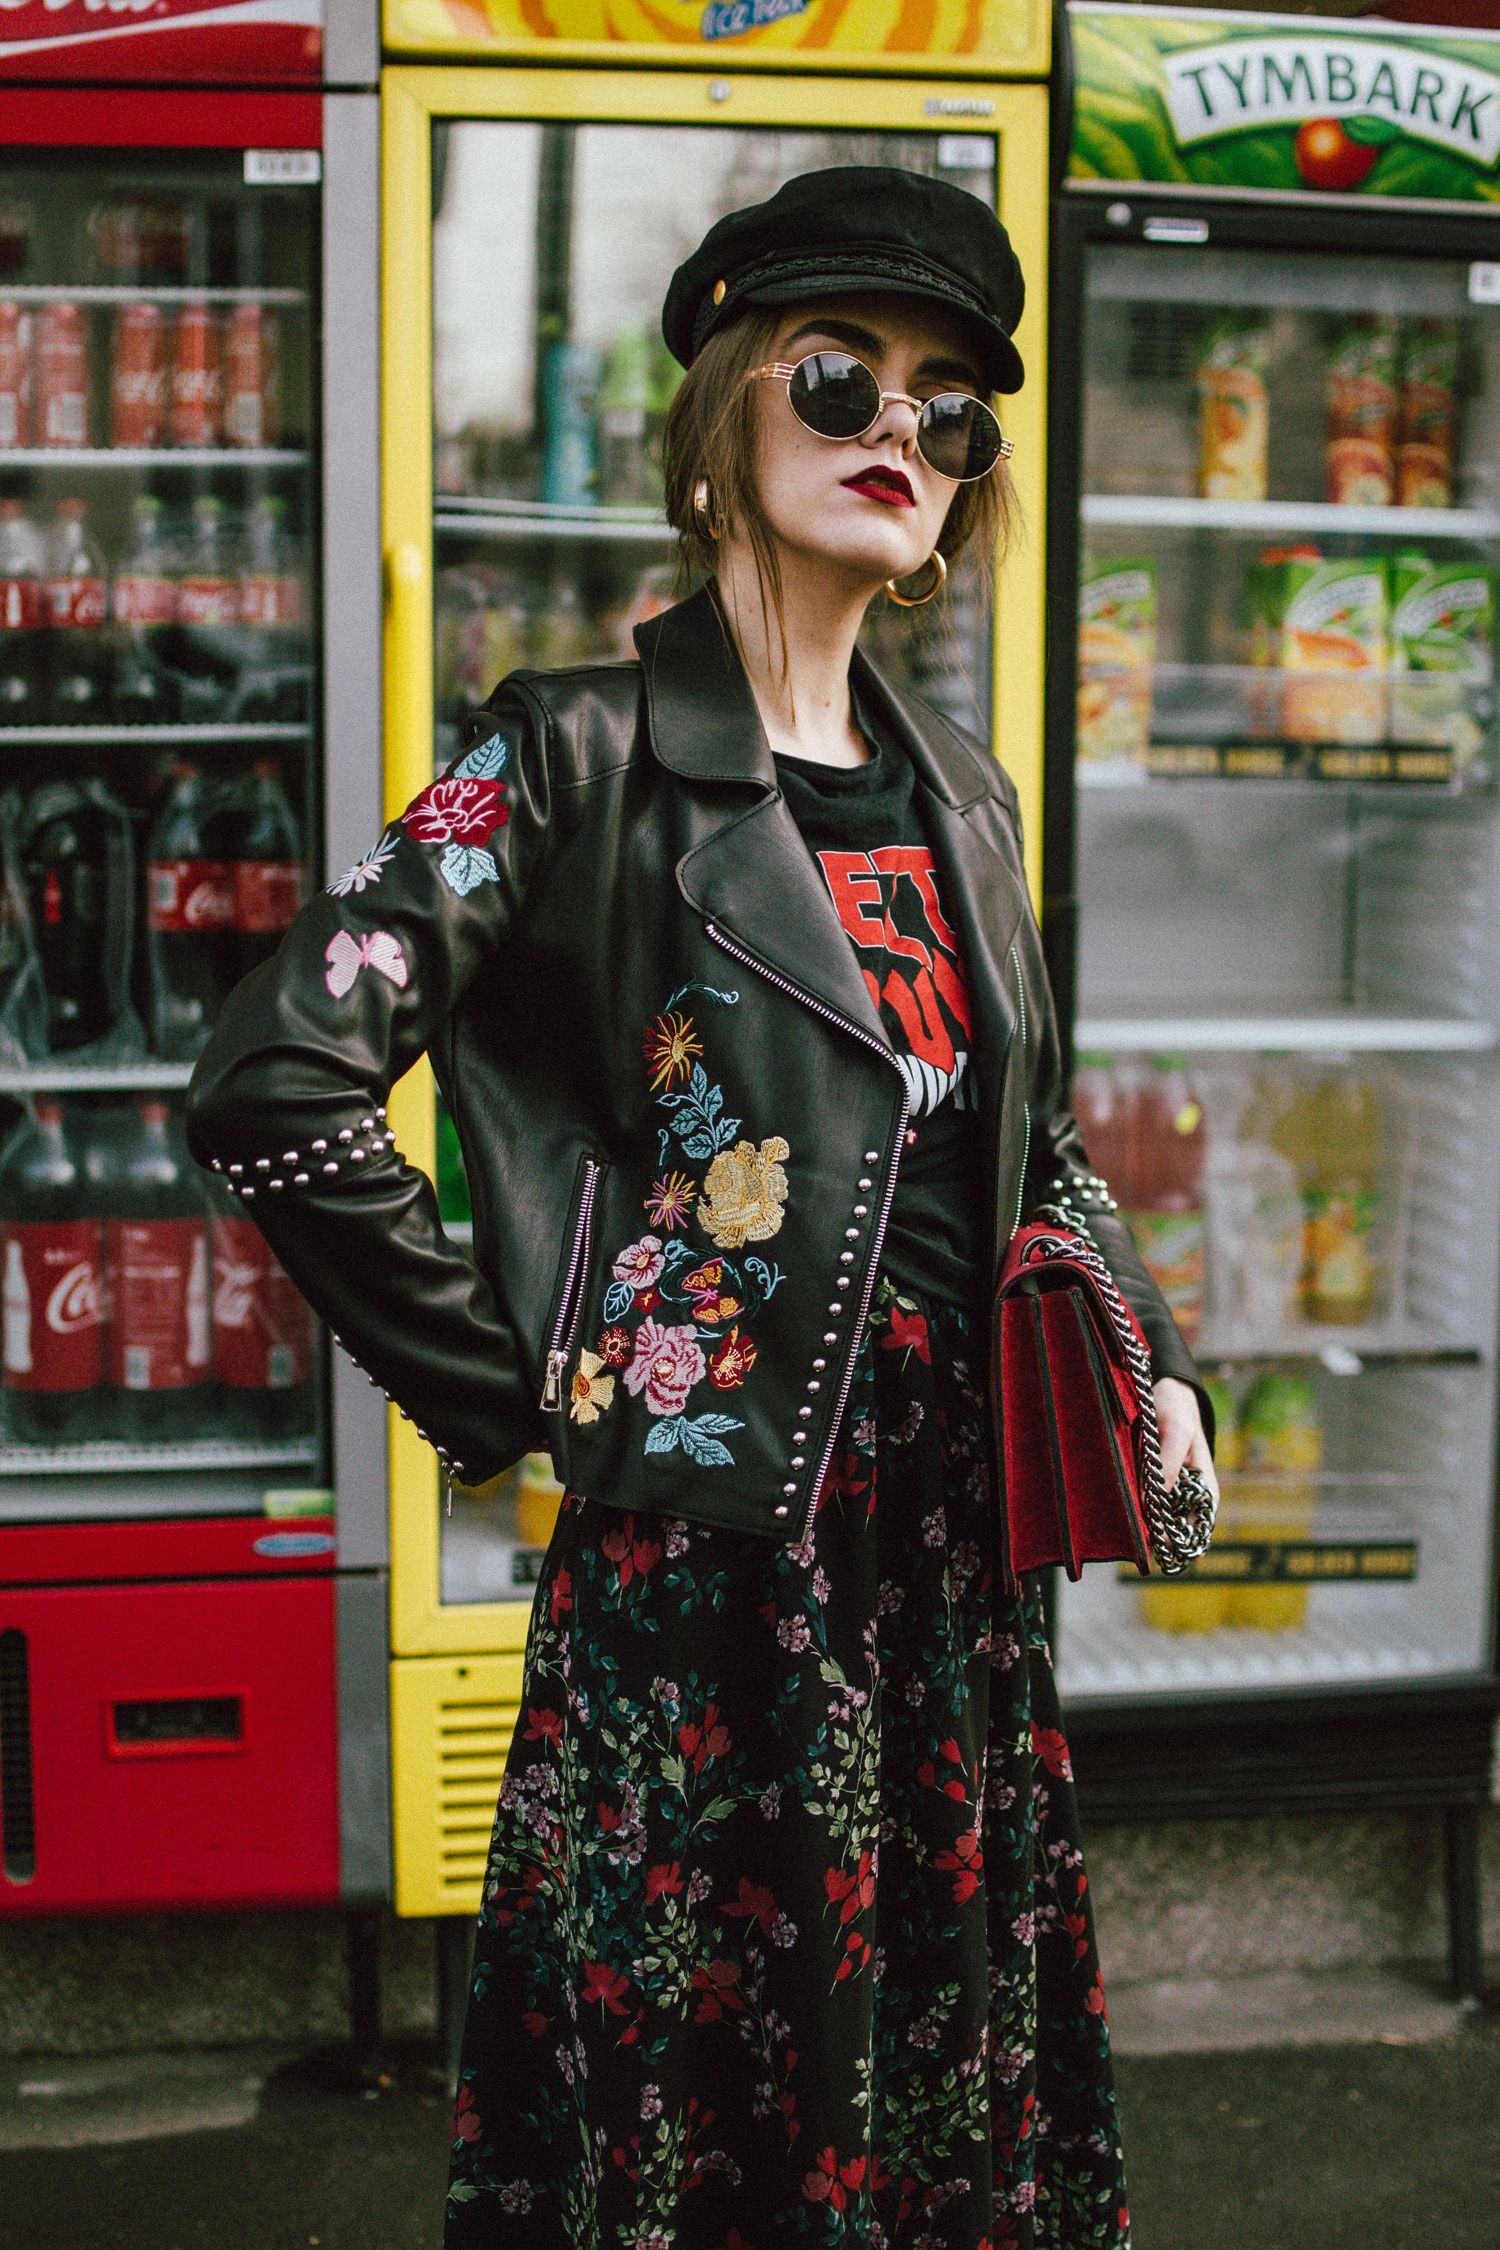 How To Mix Floral Prints Biker Jacket And Midi Dress Couturezilla Floral Leather Jacket Embroidered Leather Jacket Outfits With Hats [ 2250 x 1500 Pixel ]